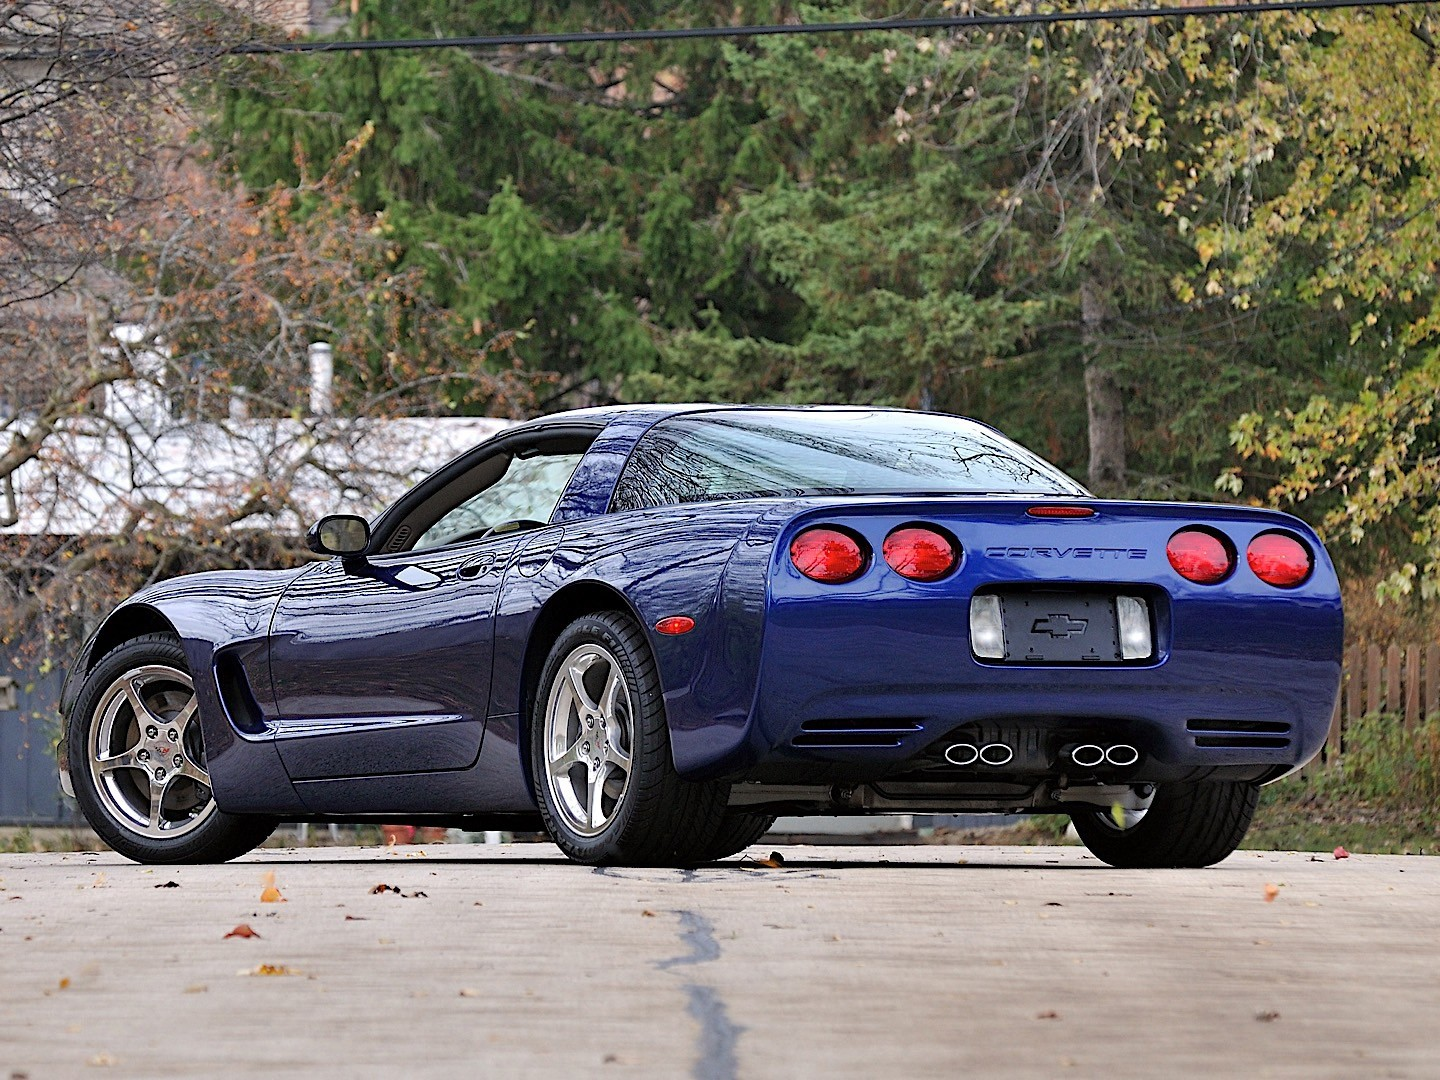 chevrolet corvette c5 coupe specs photos 1997 1998. Black Bedroom Furniture Sets. Home Design Ideas